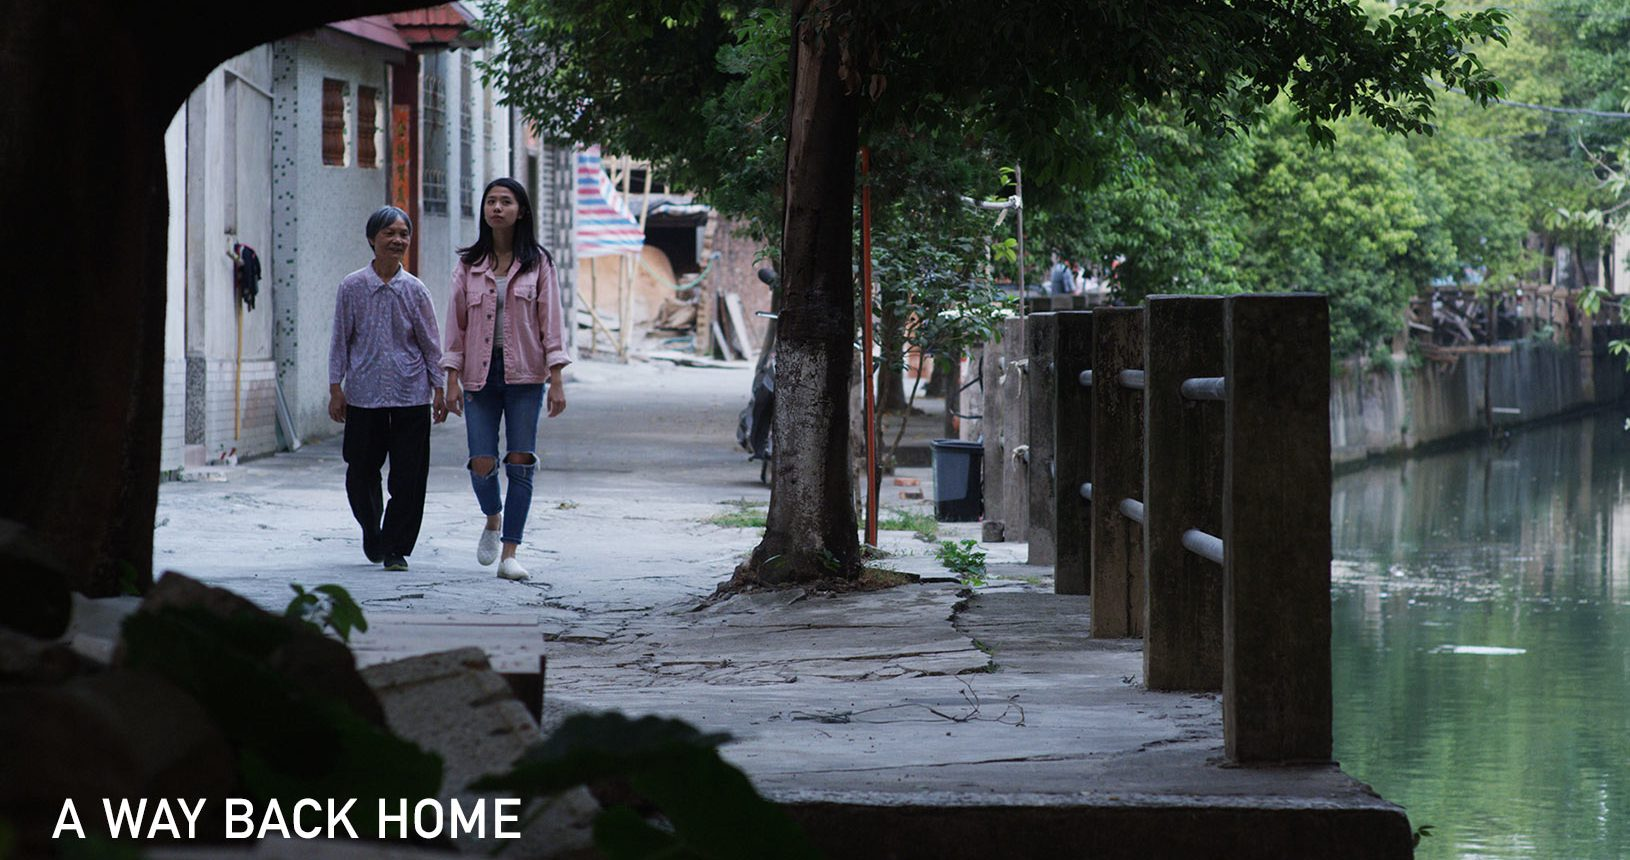 Film: A Way Back Home